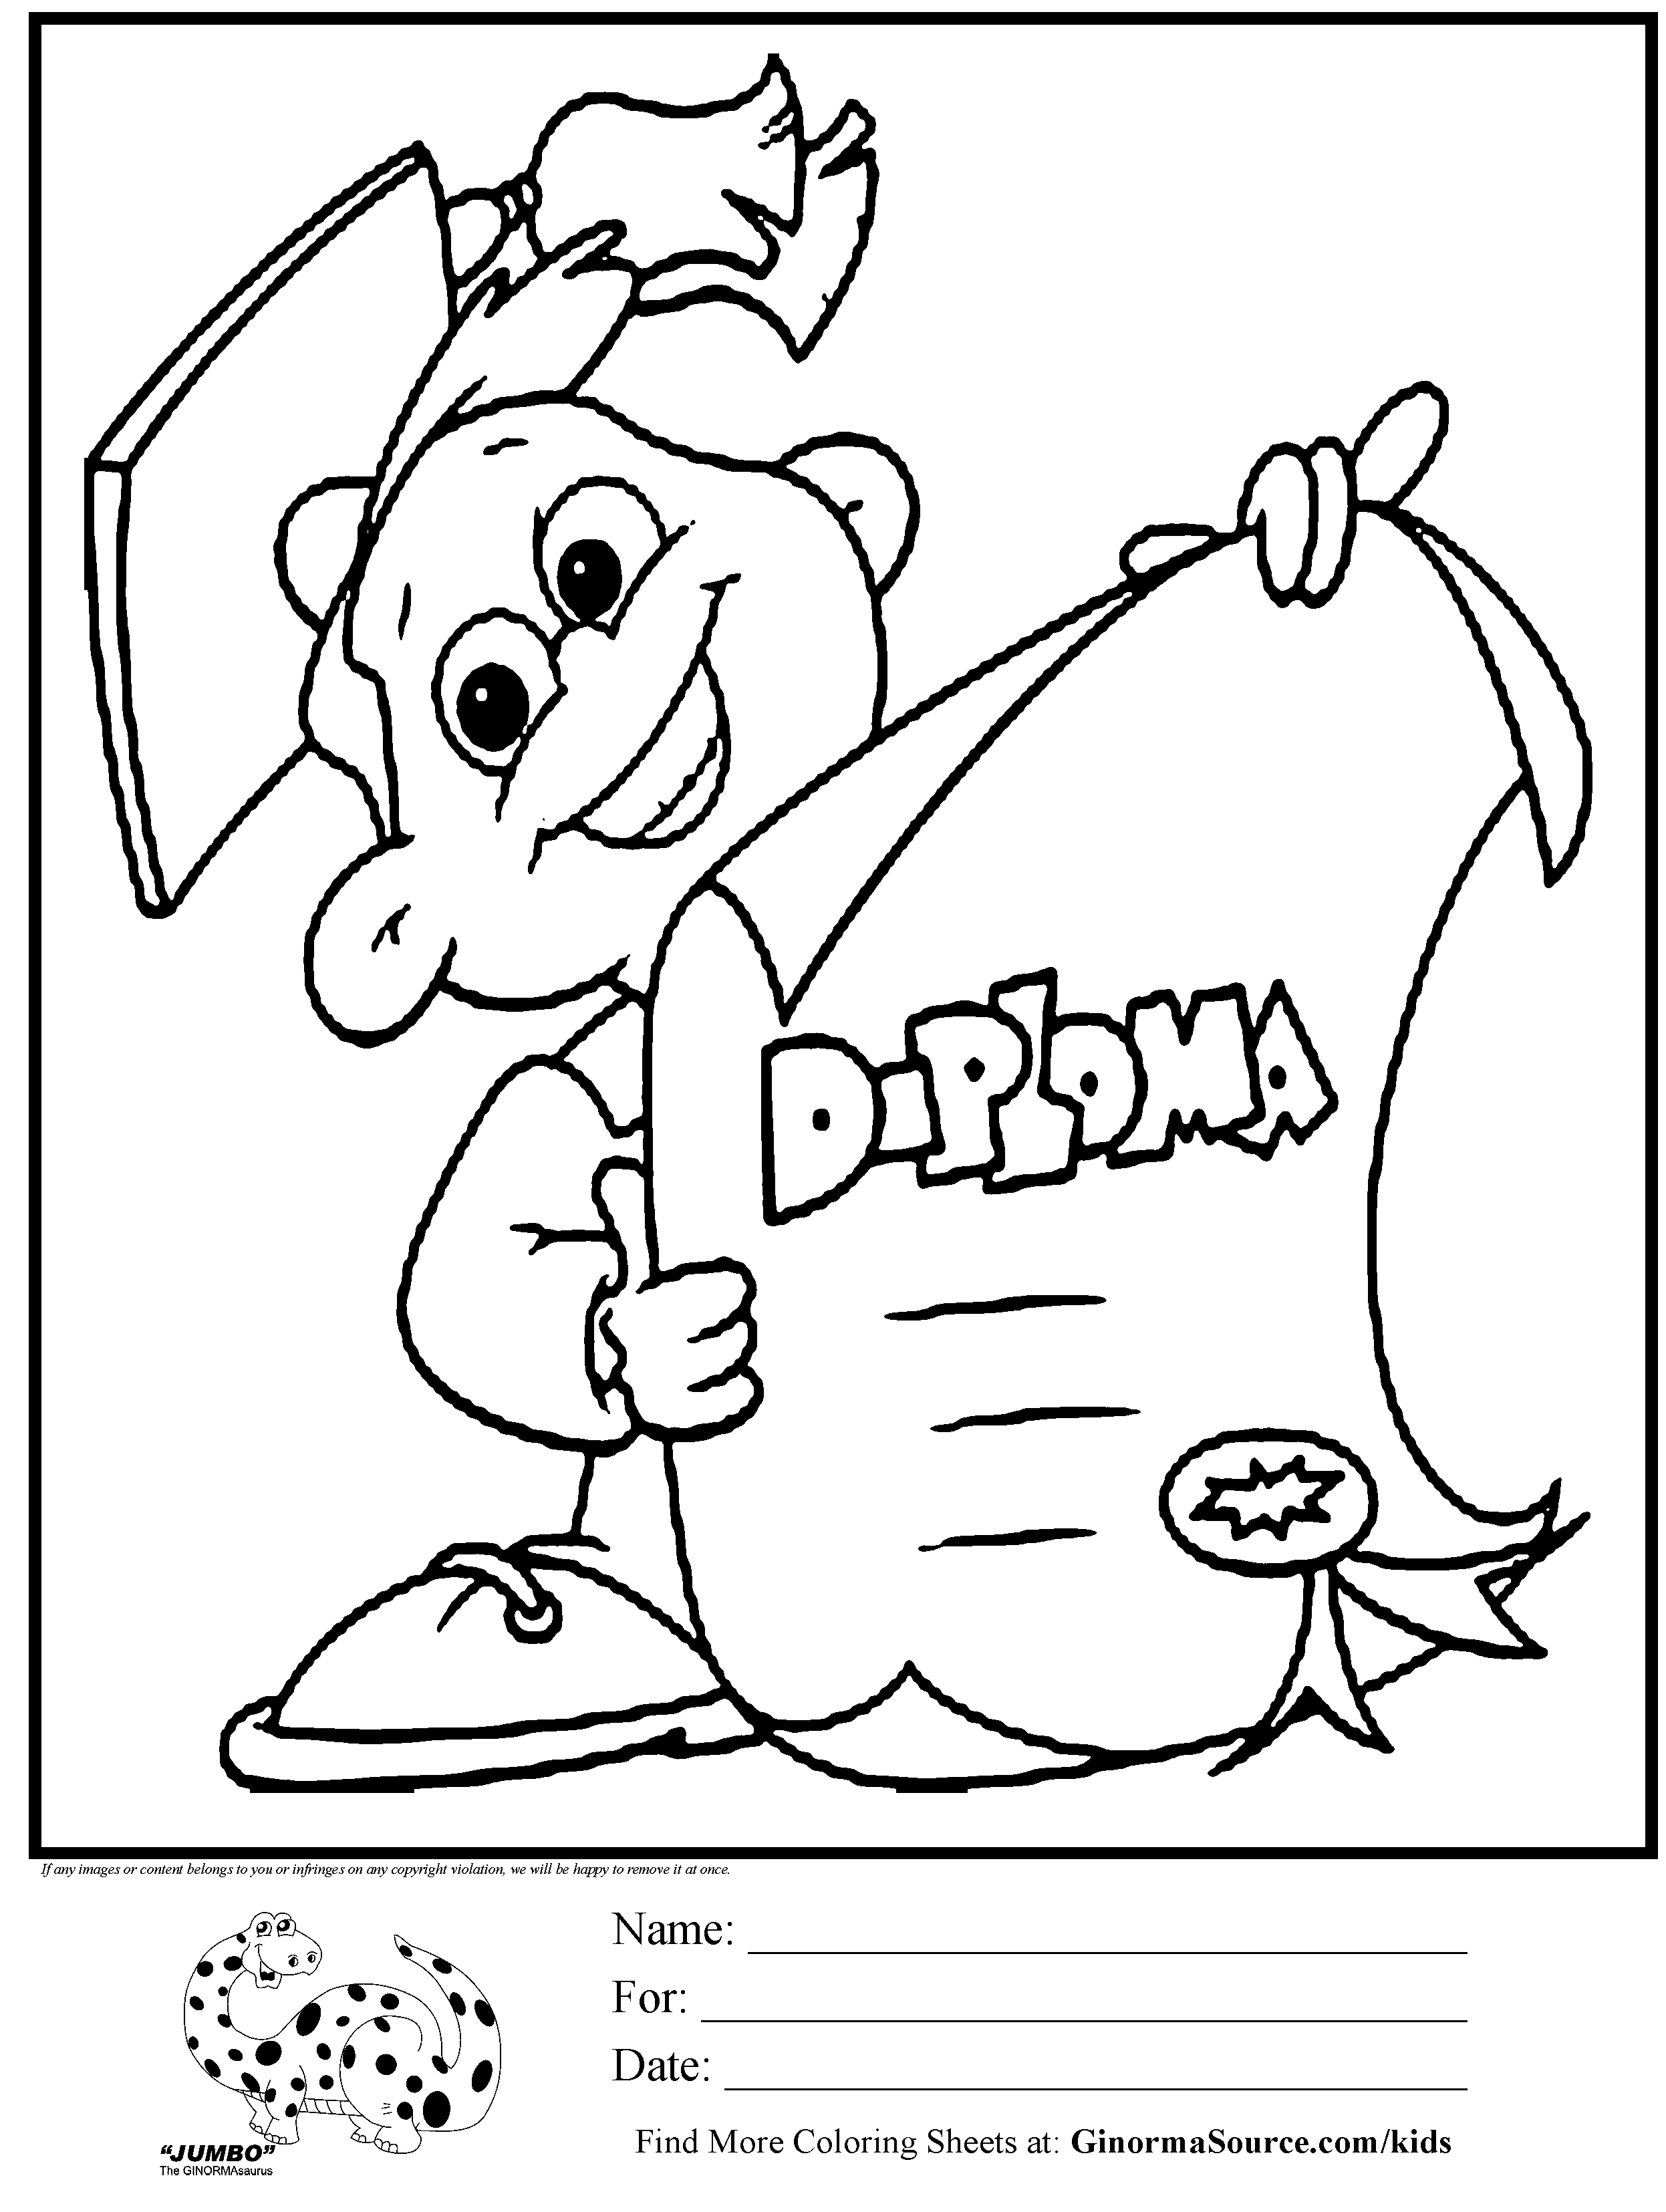 kindergarten coloring printable pages - photo#18